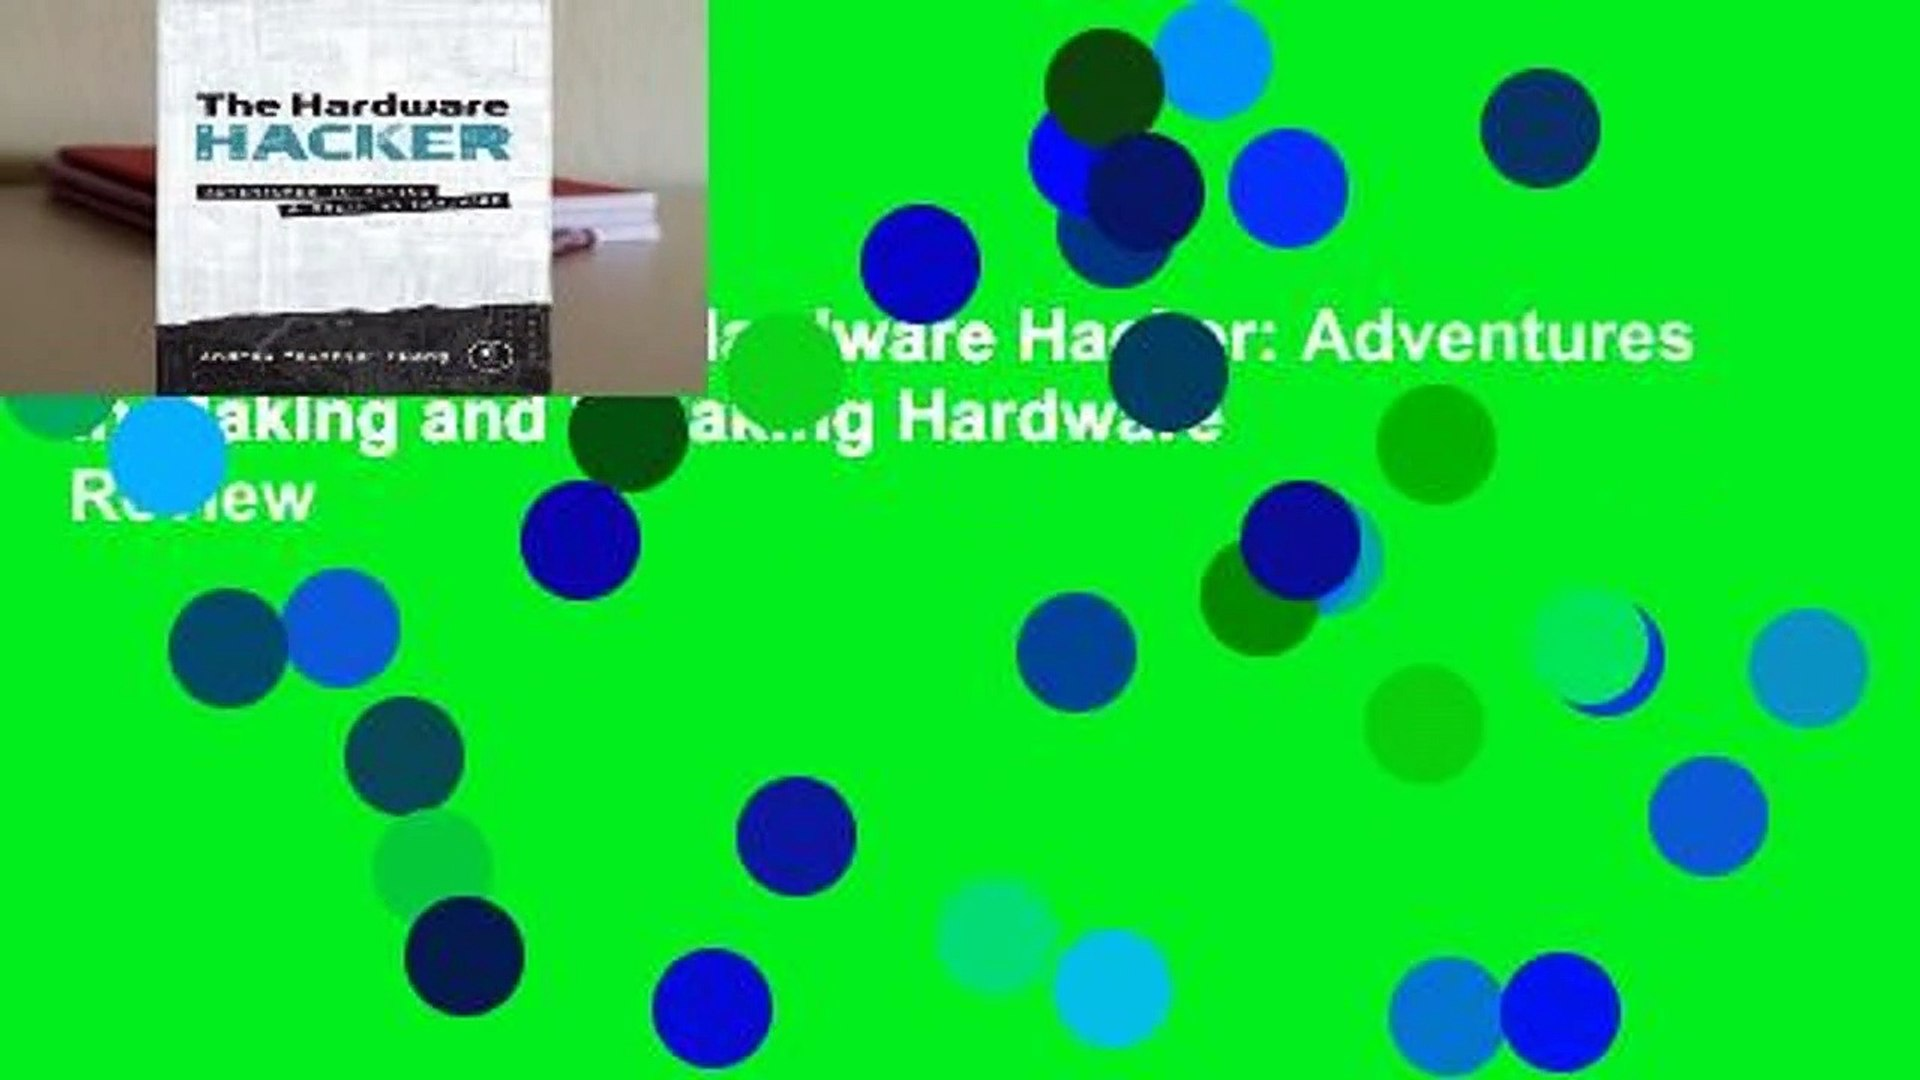 Full E-book  The Hardware Hacker: Adventures in Making and Breaking Hardware  Review